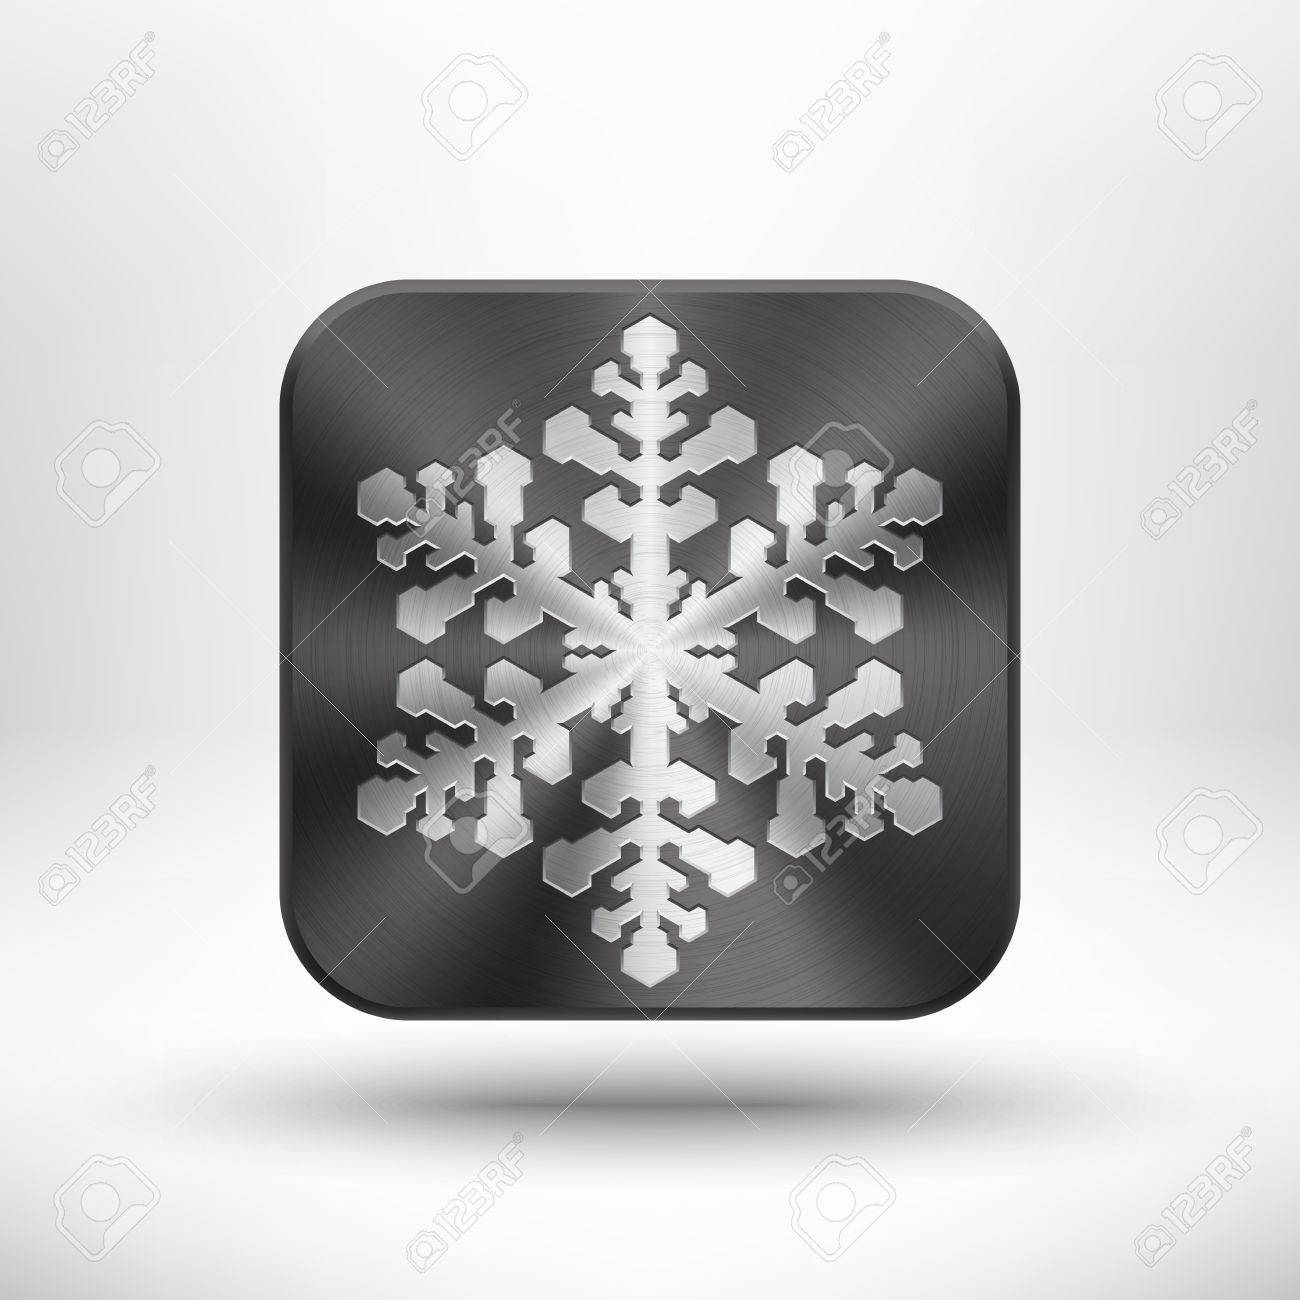 Abstract Christmas snowflake icon with metal texture  chrome, stainless steel, silver , shadow and light background for internet sites, web user interfaces  ui  and applications  app   Winter holidays Stock Vector - 17192136